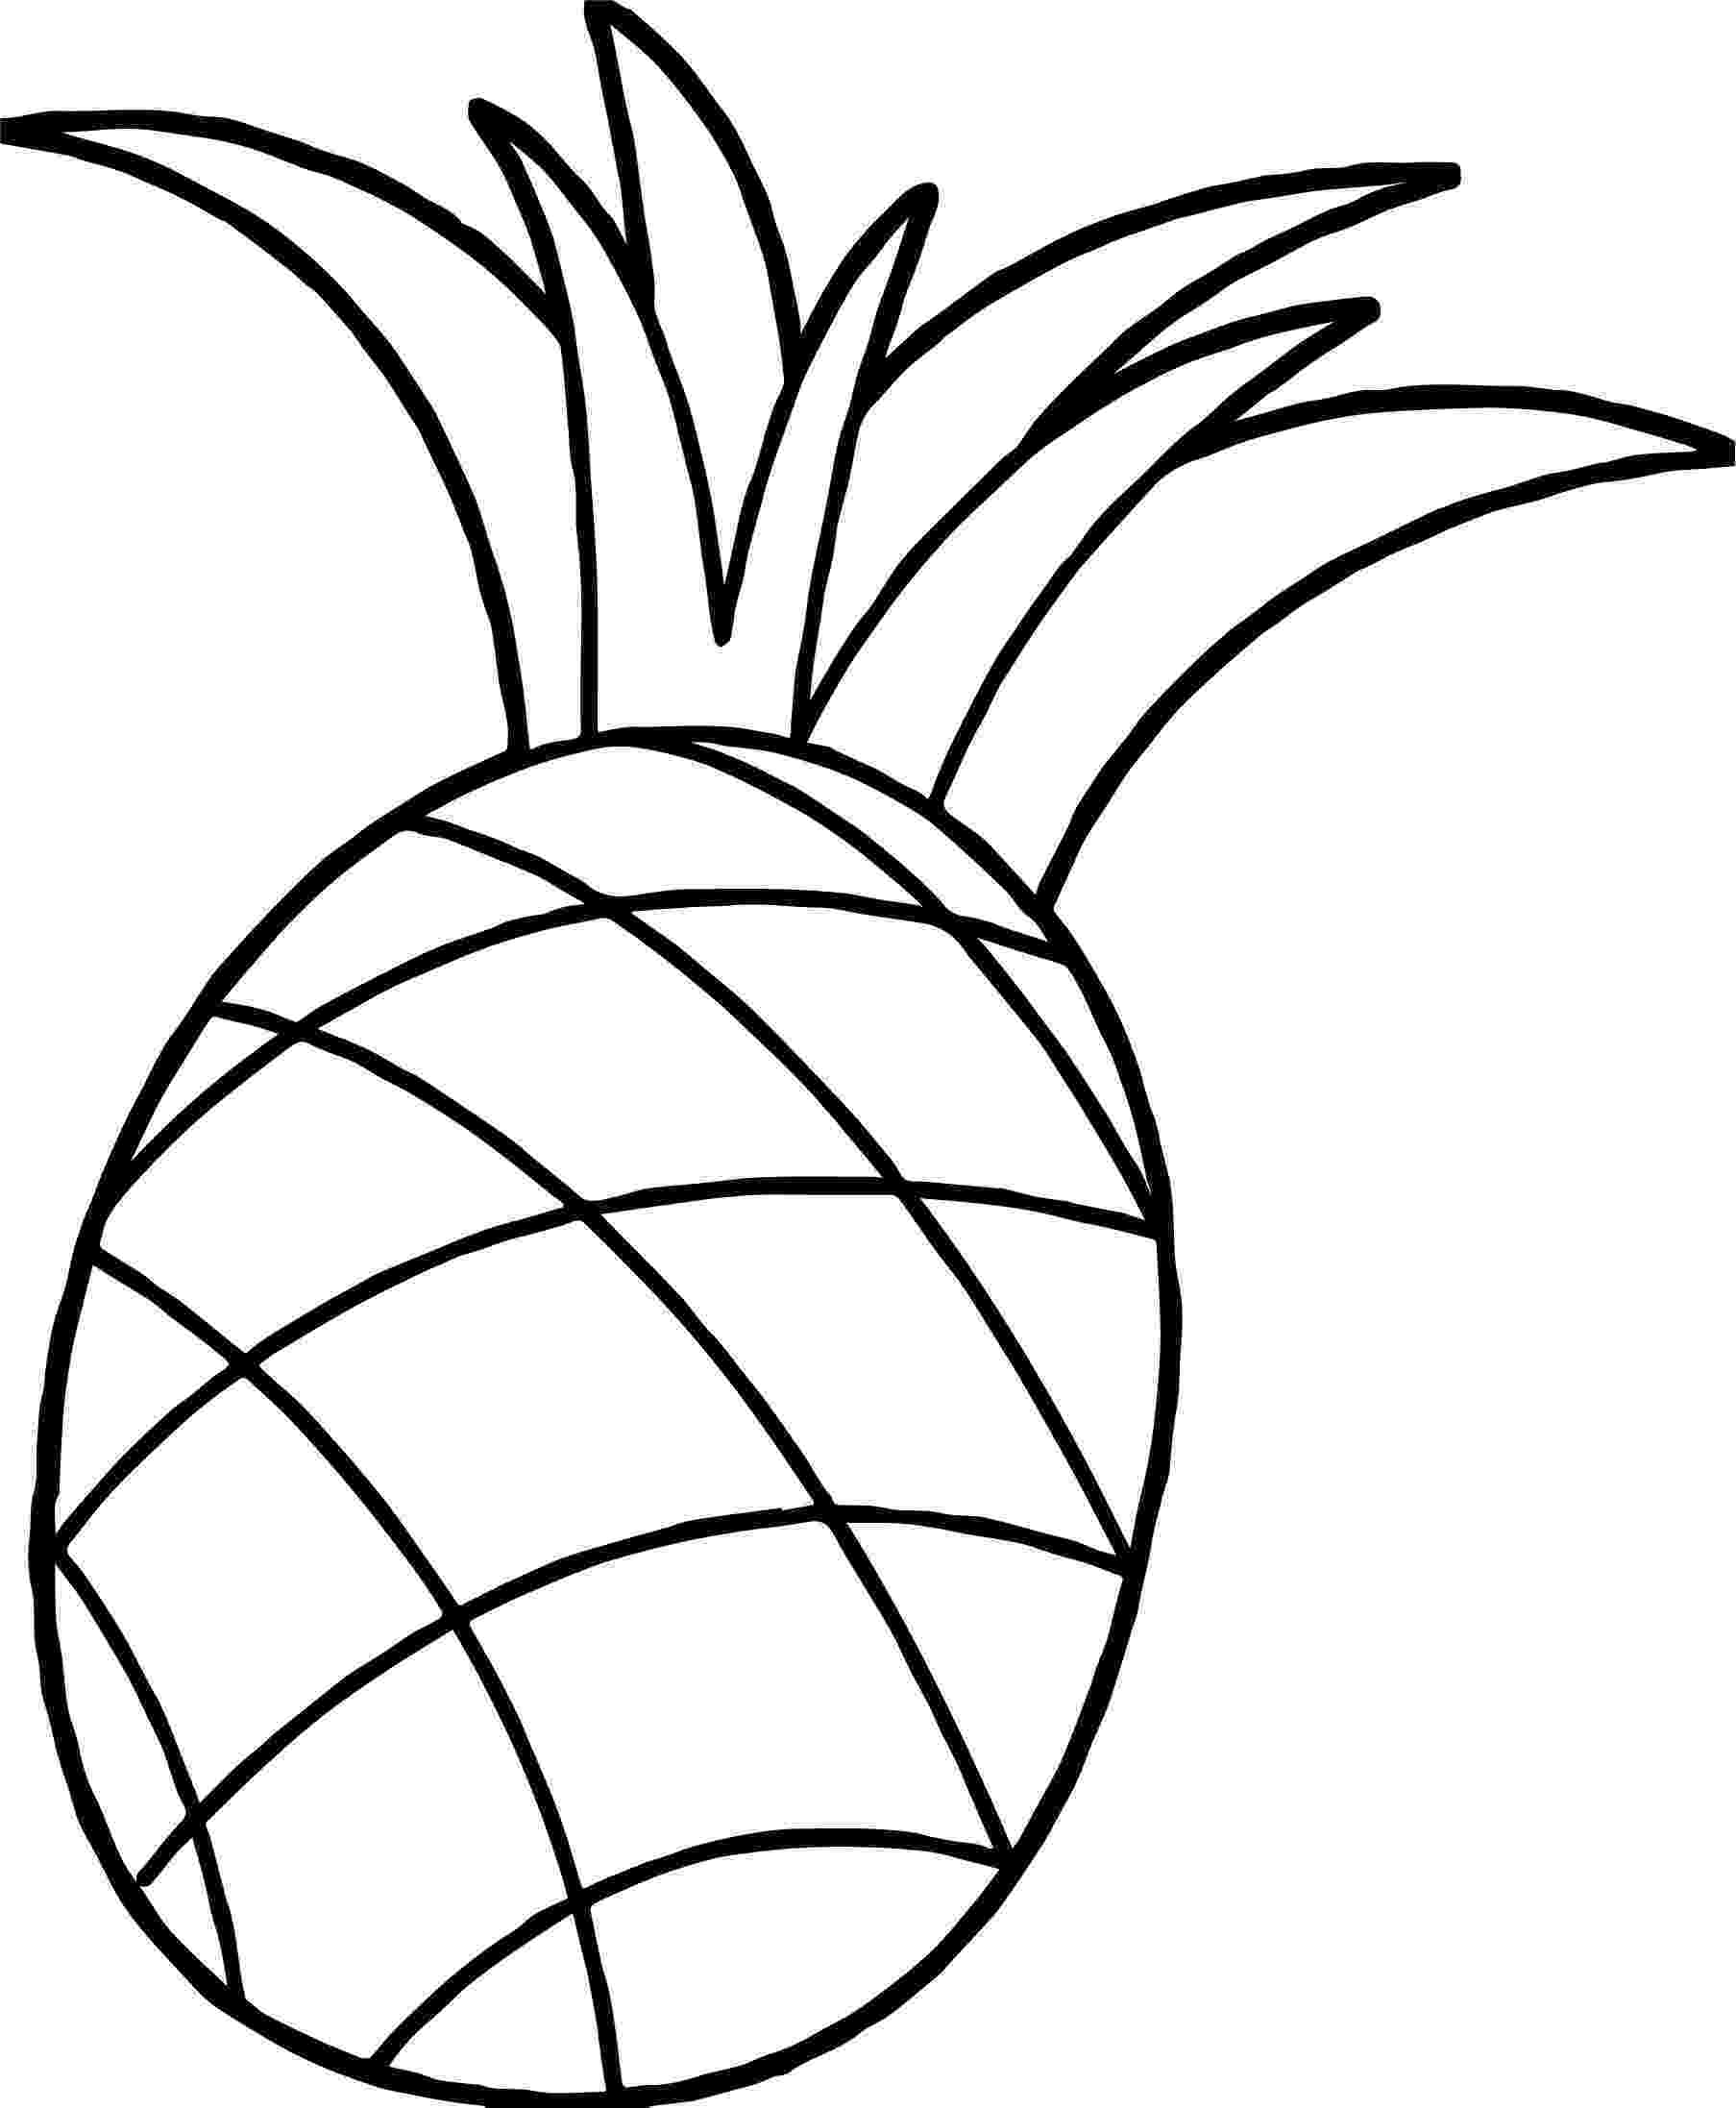 pineapple colouring picture printable pineapple coloring pages for kids picture pineapple colouring